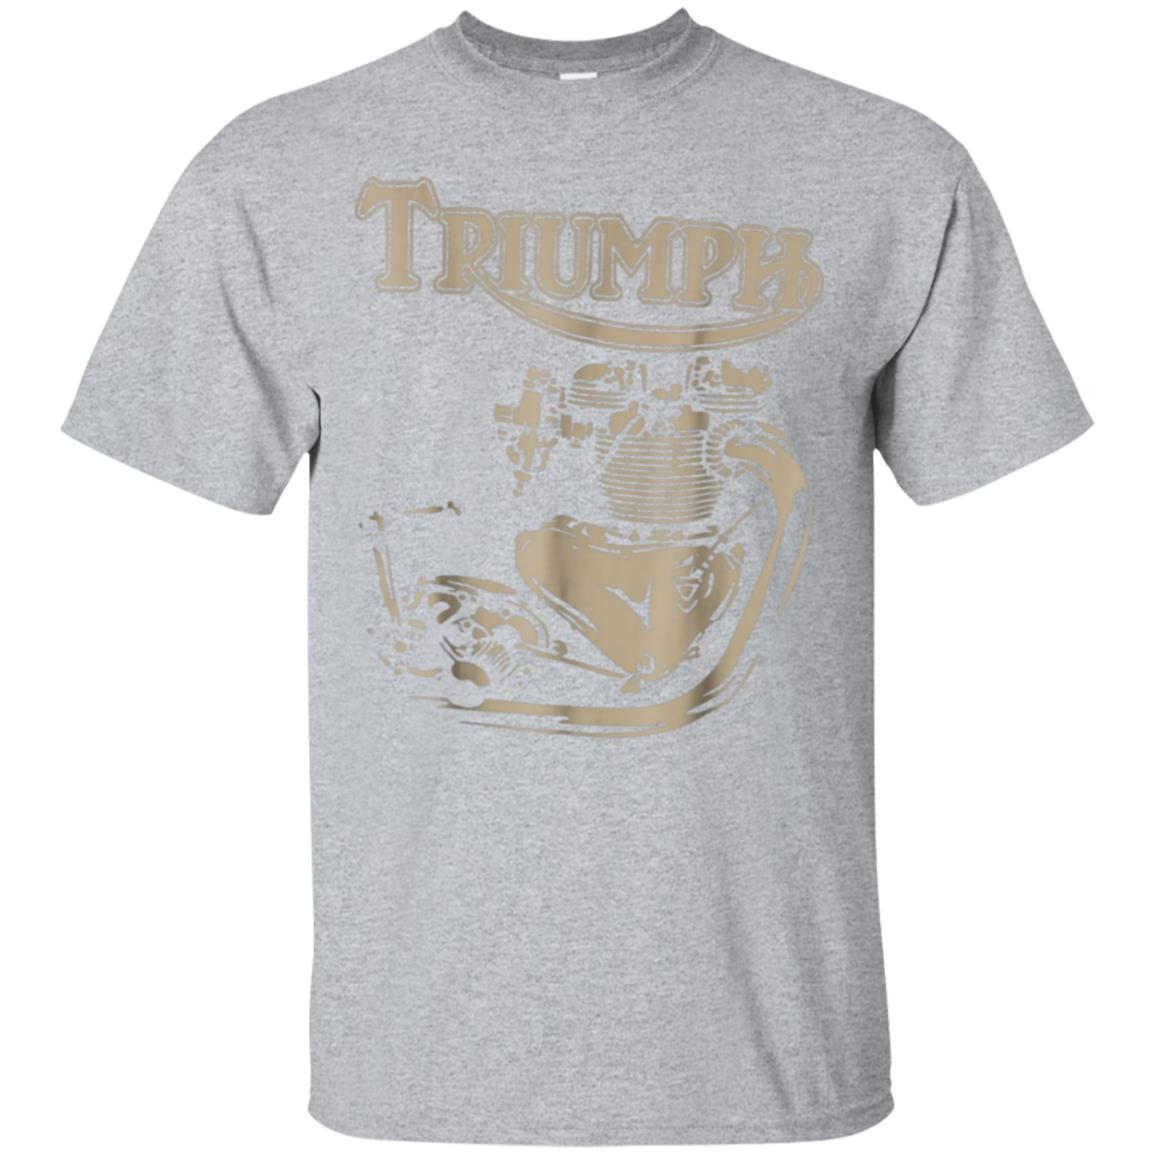 New Triumph Engine Motorcycle Cycling TShirt 99promocode